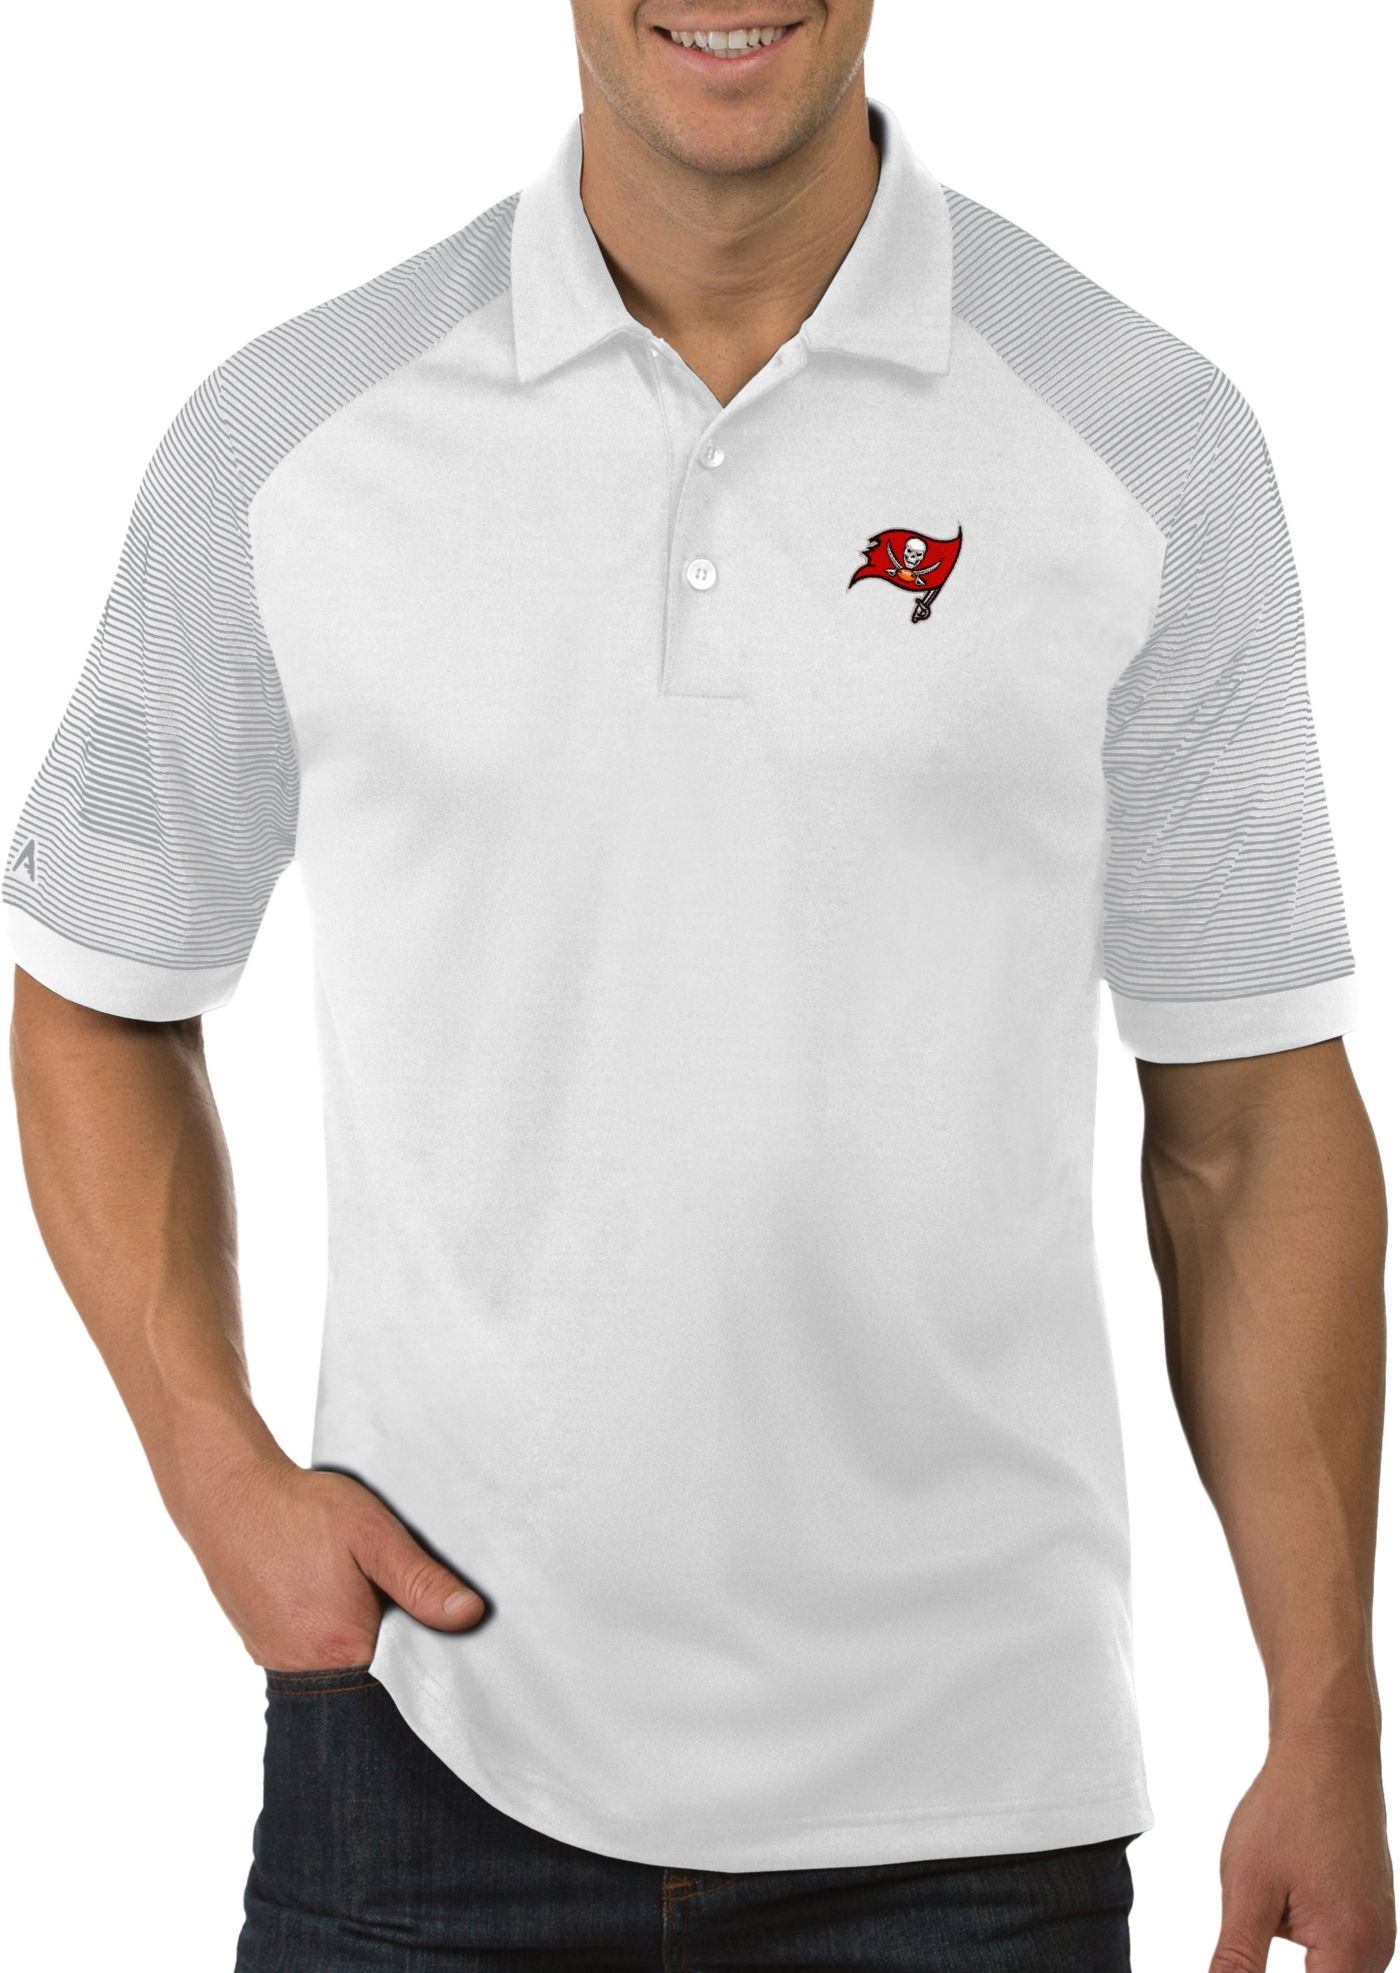 Antigua Men's Tampa Bay Buccaneers Engage White Performance Polo